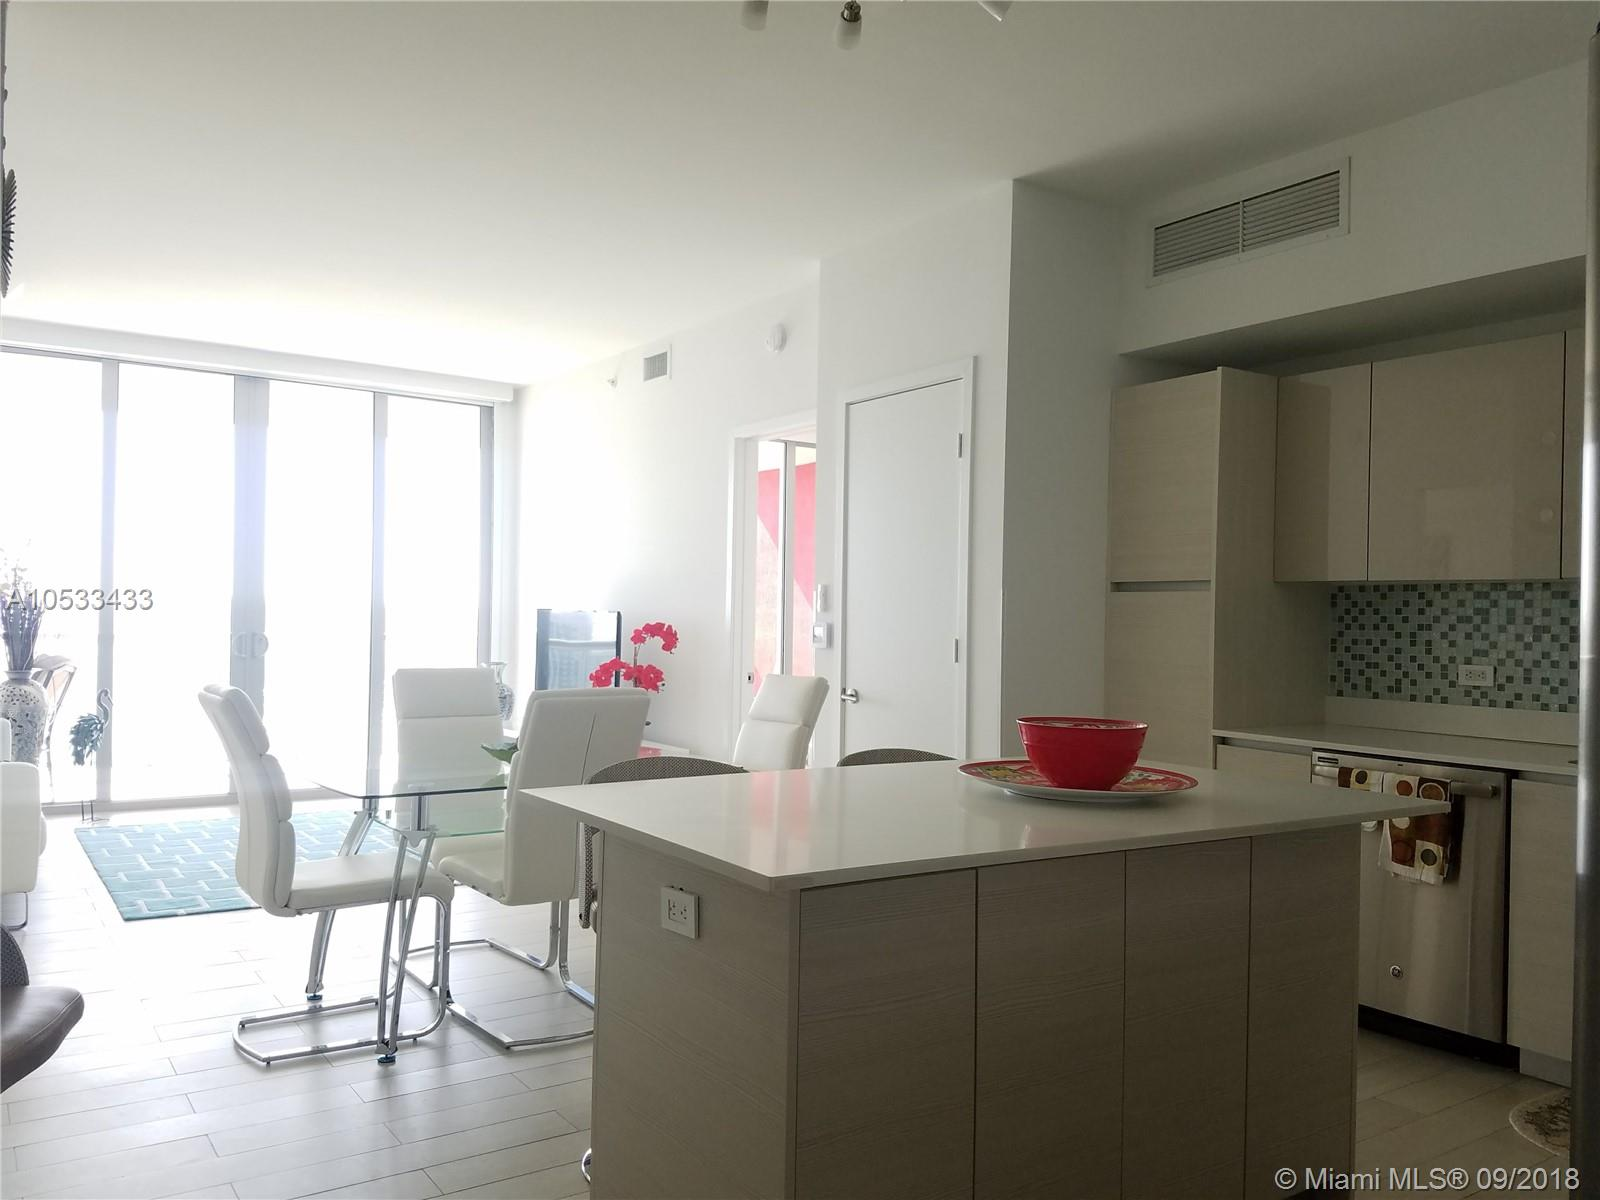 2600 E Hallandale Beach Blvd #T3105 For Sale A10533433, FL